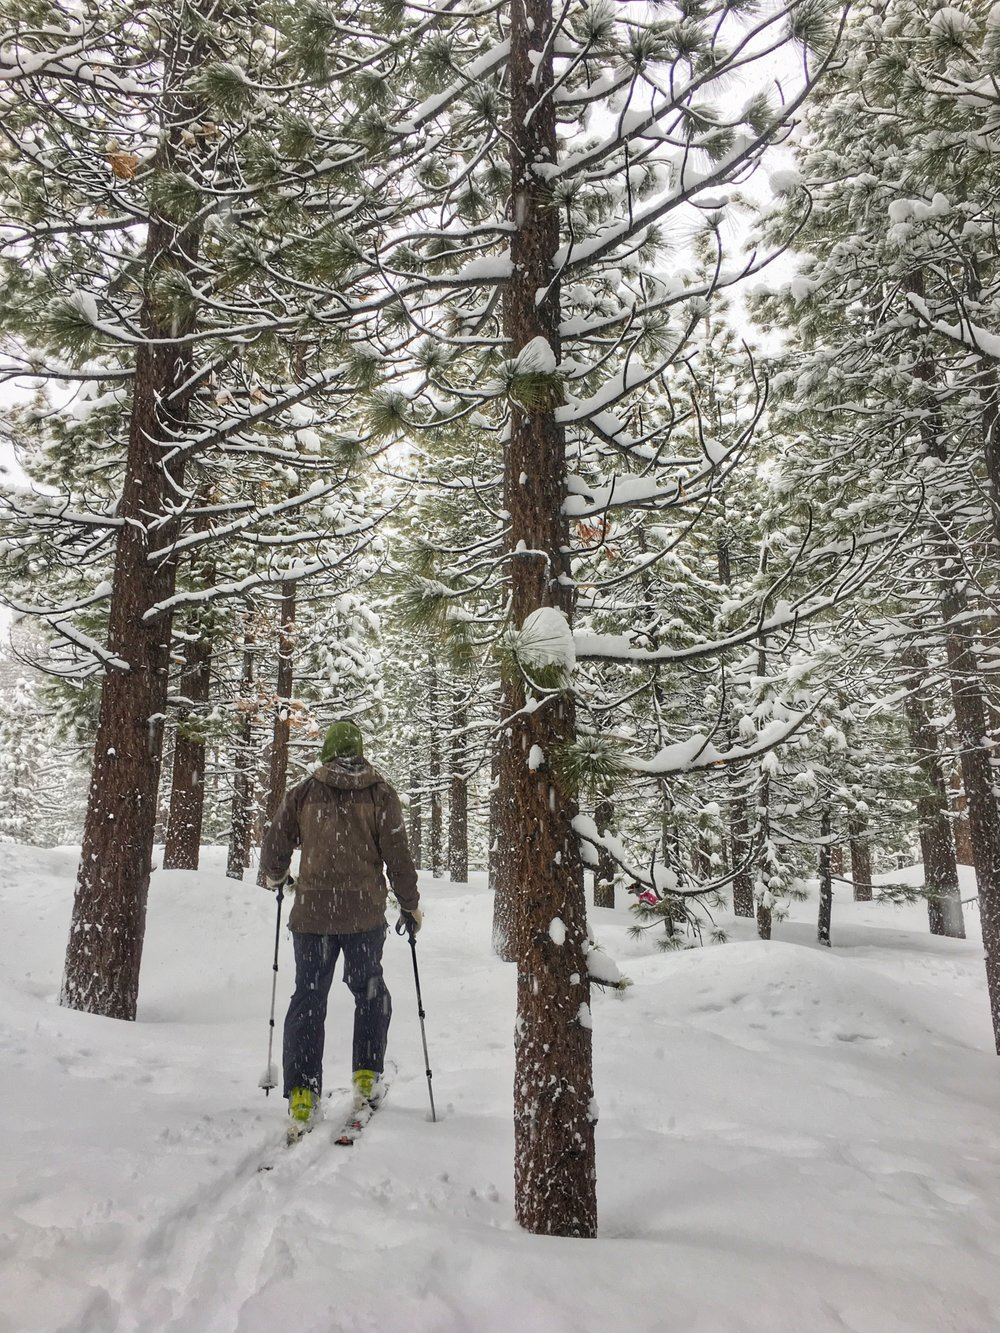 Cross country skiing through the trees during a snow storm at Shady Rest. Even the stormy days beg you go outside.